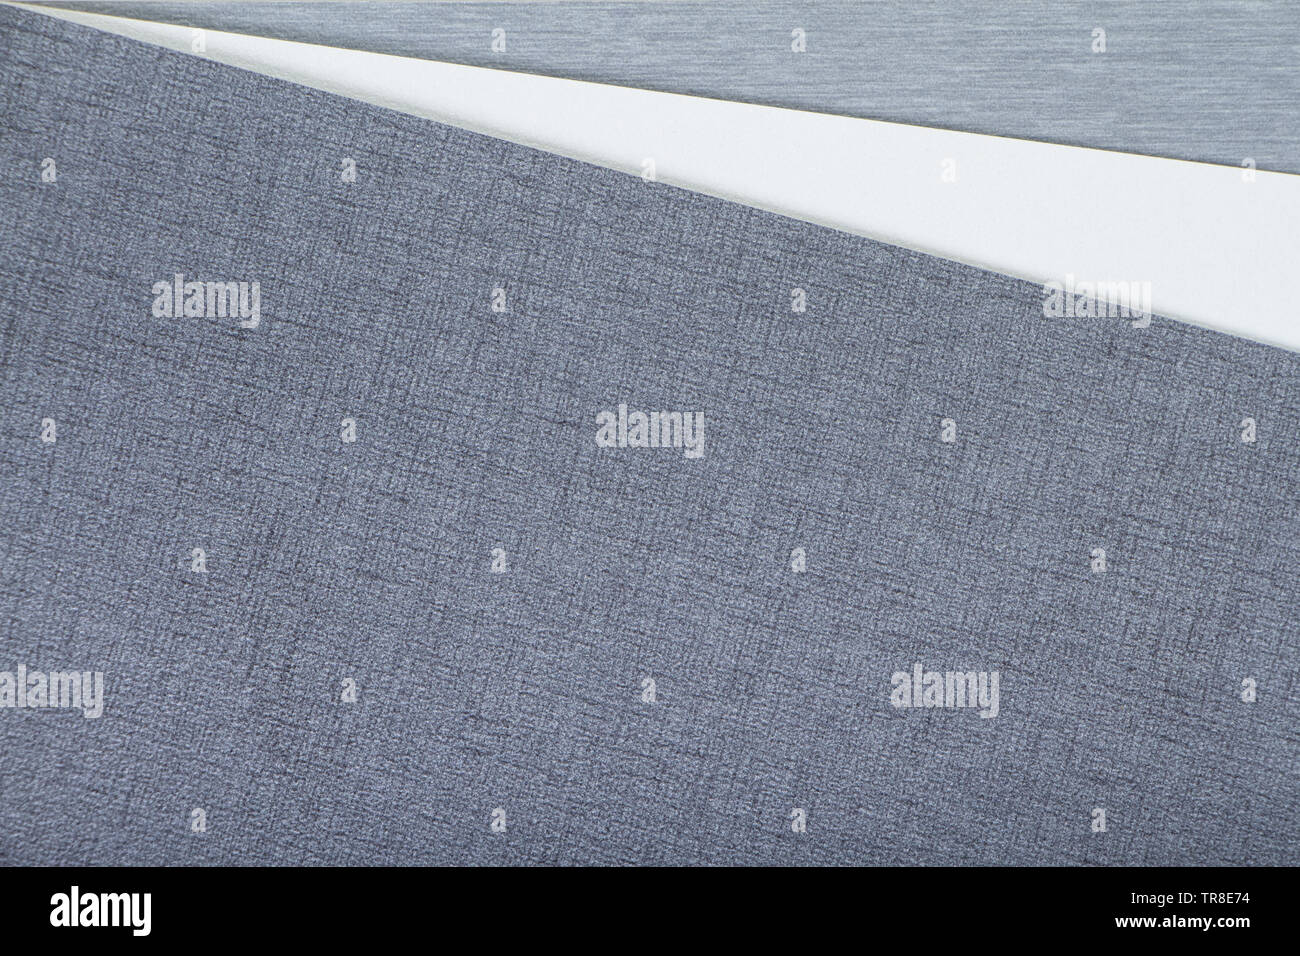 Two-tone white and gray textural colored background, minimalistic concept or background. - Stock Image